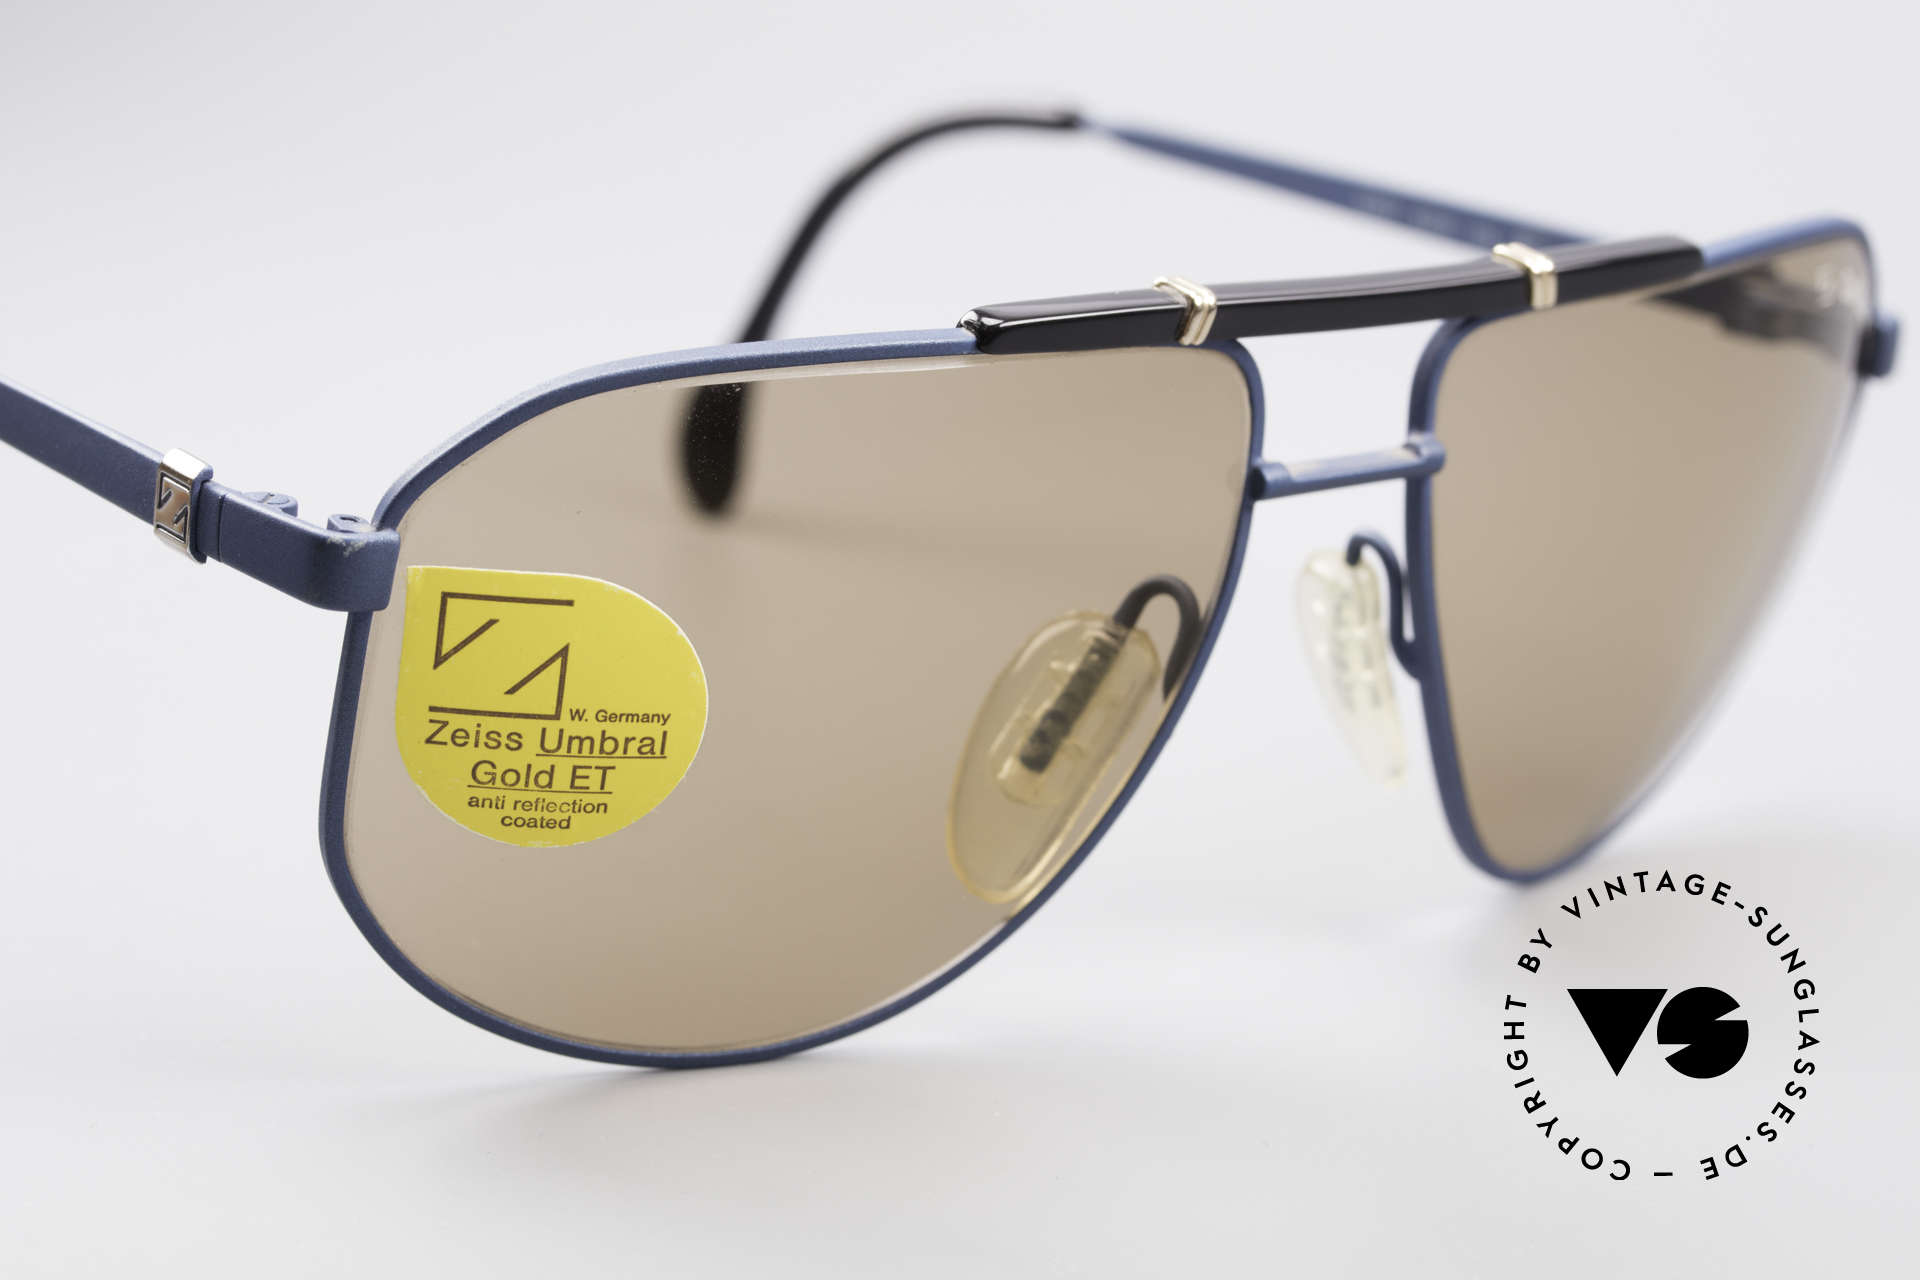 Zeiss 9292 Umbral Gold Quality Lenses, finest materials & craftsmanship (You must feel this!), Made for Men